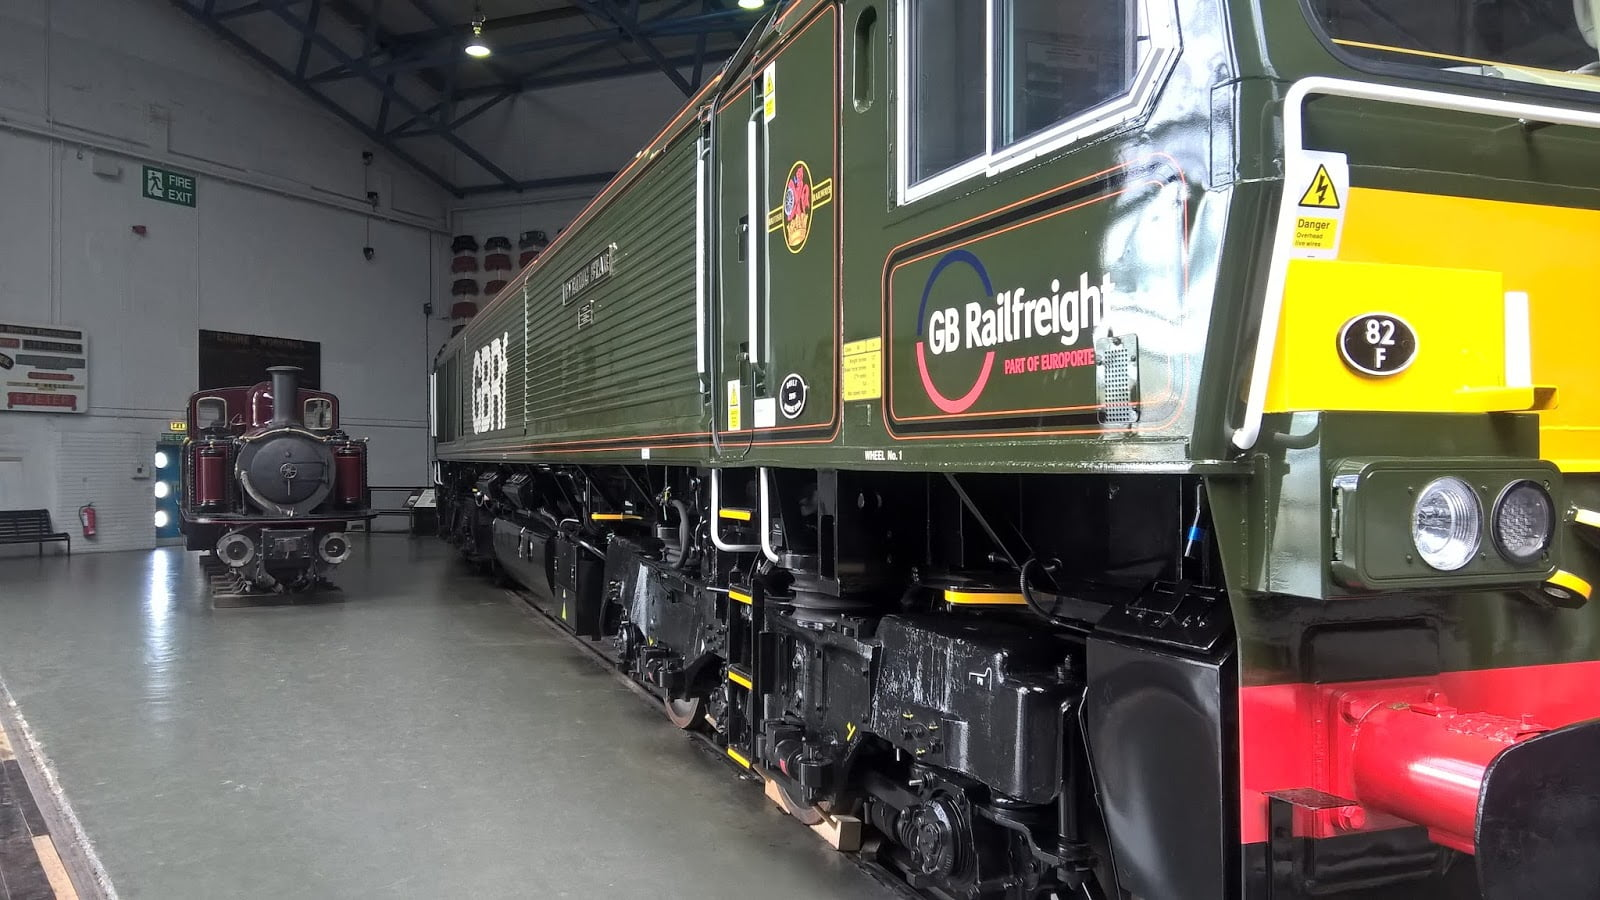 Livingston Thomas and No. 66779 Evening Star at the NRM